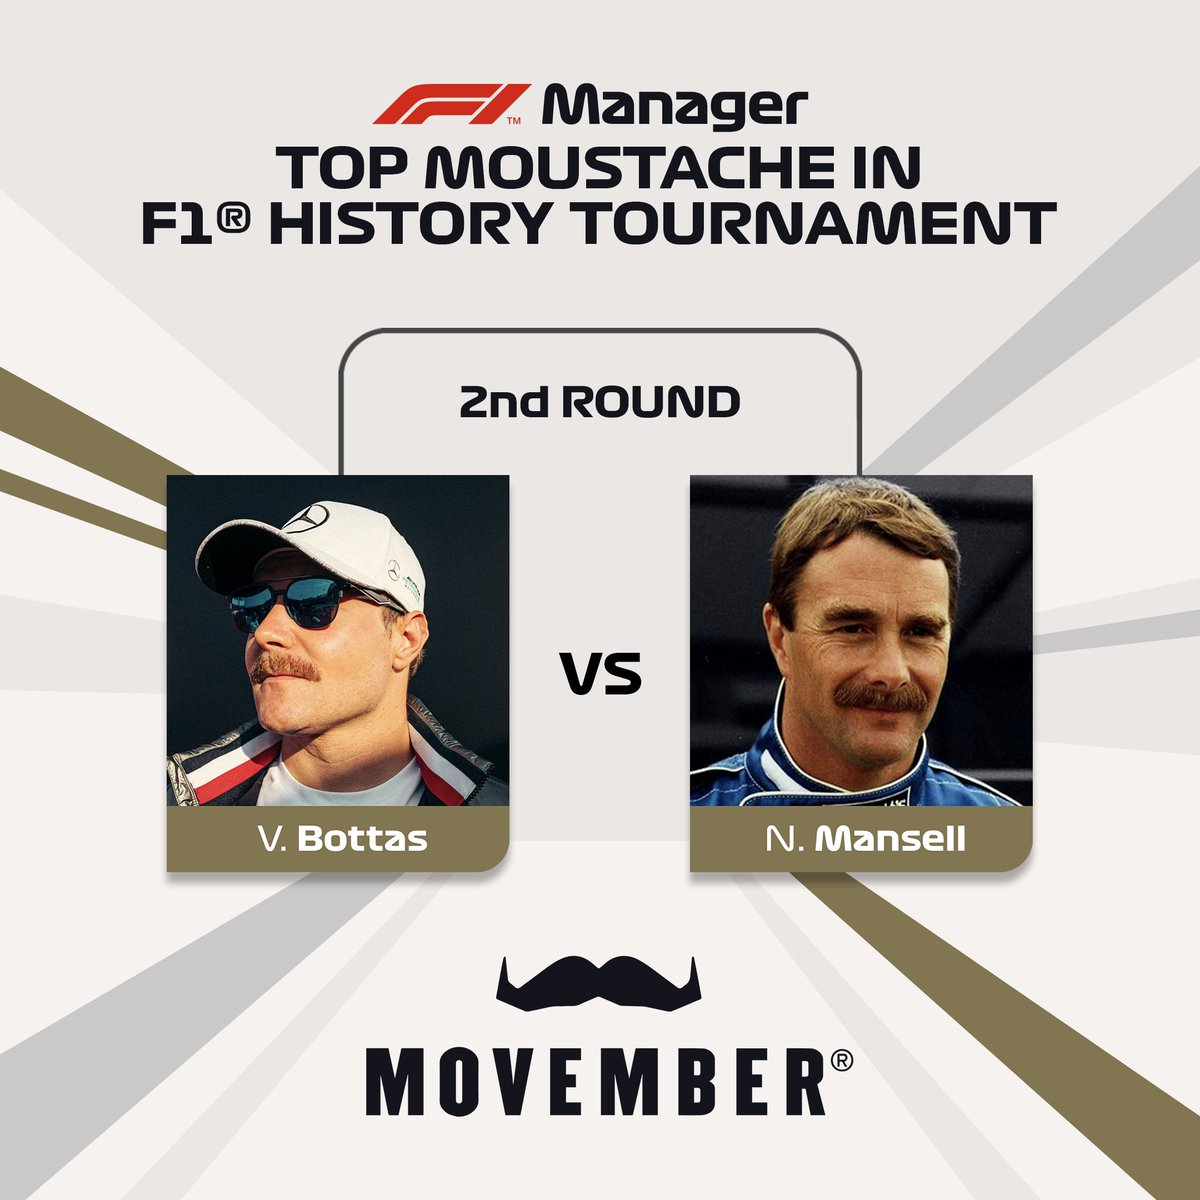 After tallying up all the votes from Twitter/Facebook/Discord/Instagram, in what many may see as a massive upset, @ValtteriBottas vanquishes Nigel Mansell, one of our pre-tournament faves! Wow..😲  3rd Round poll coming soon.  #F1MMovember #Movember #Movember2020 #F1Manager #F1 https://t.co/7kma7jToEB